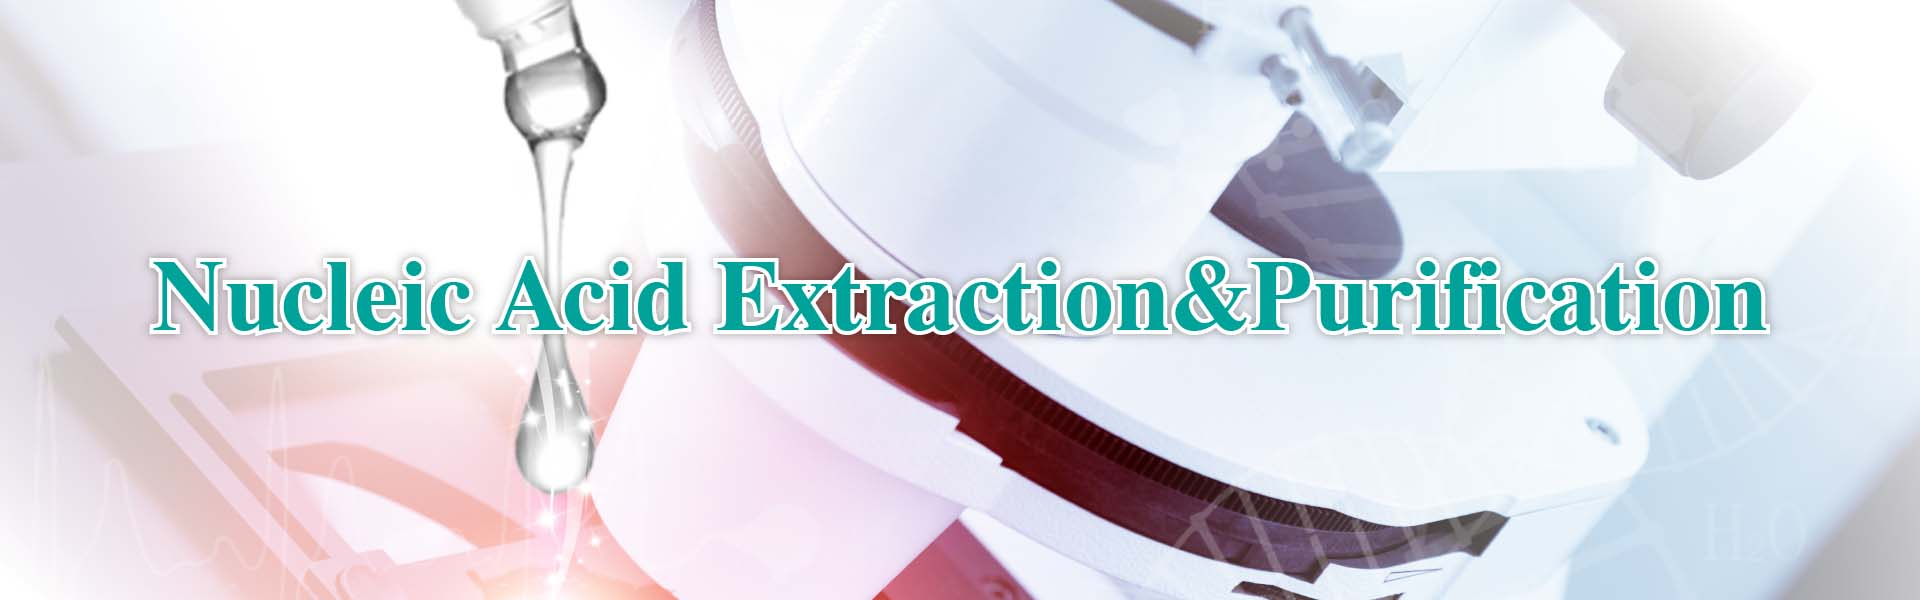 AcceGen excellent nucleic acid extraction and purification kits for high-quality and quantity DNA/RNA